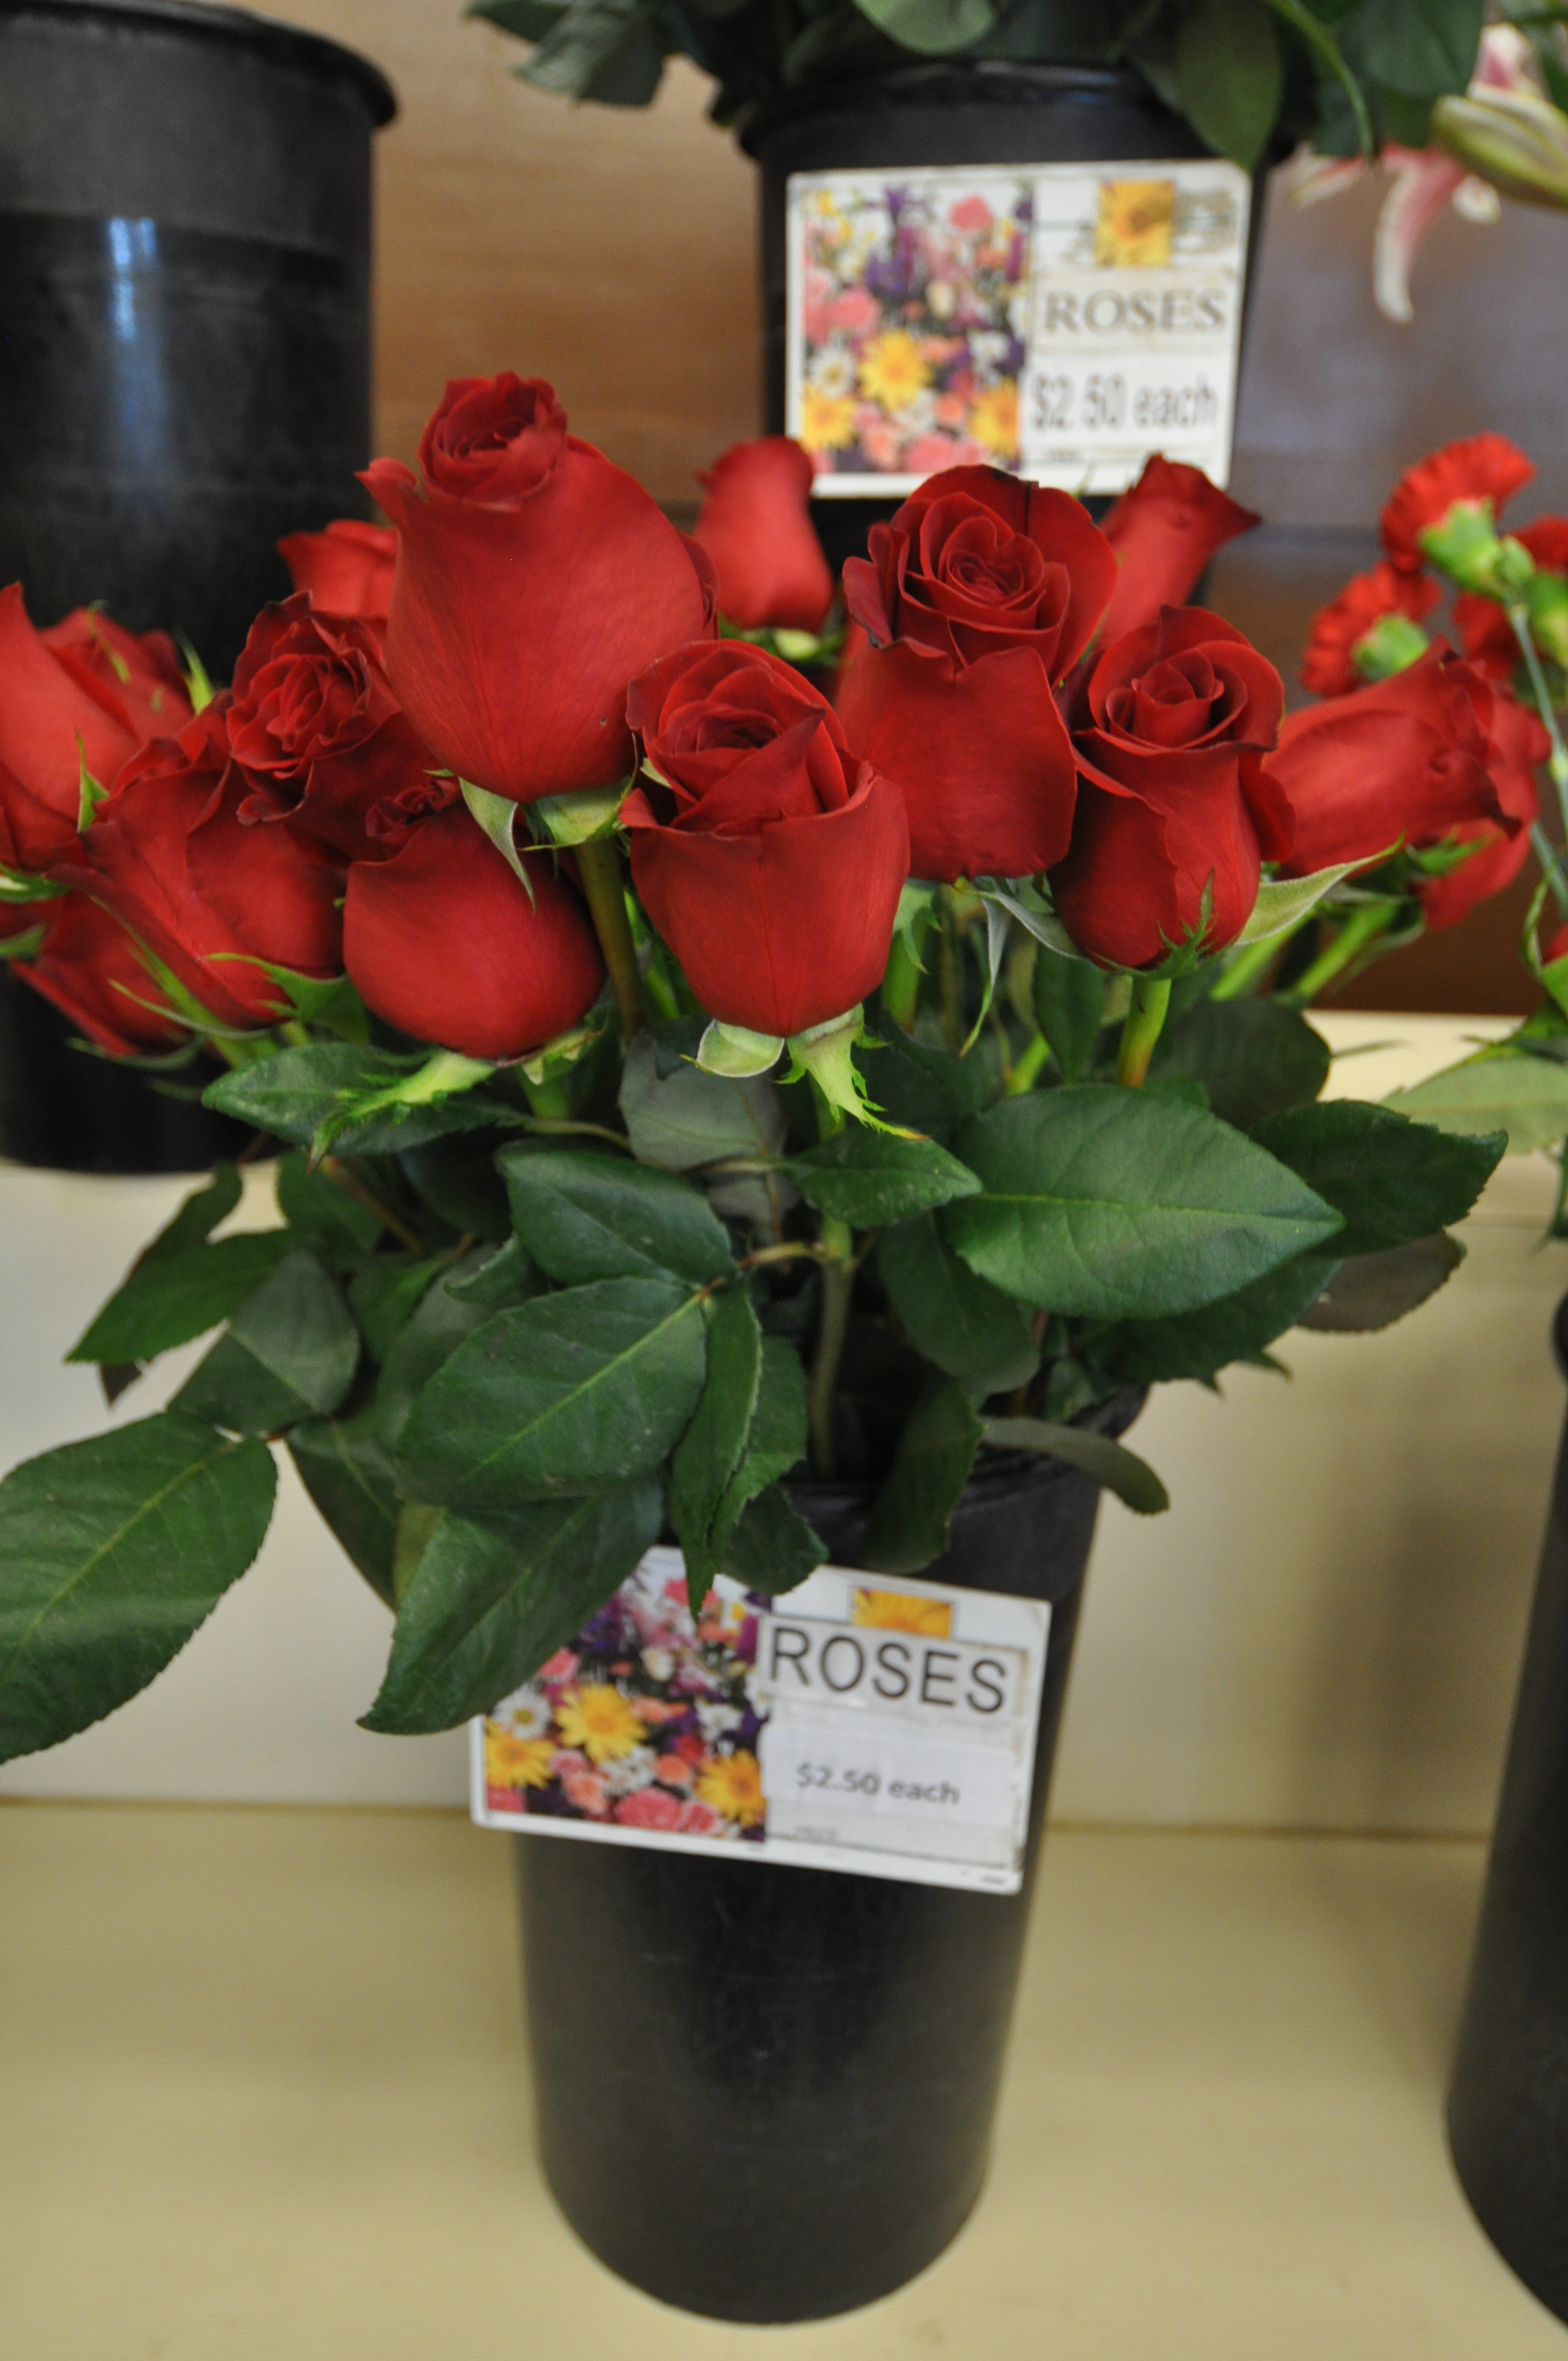 Peoples Flower Shops Northeast Heights Location Albuquerque New Mexico NM